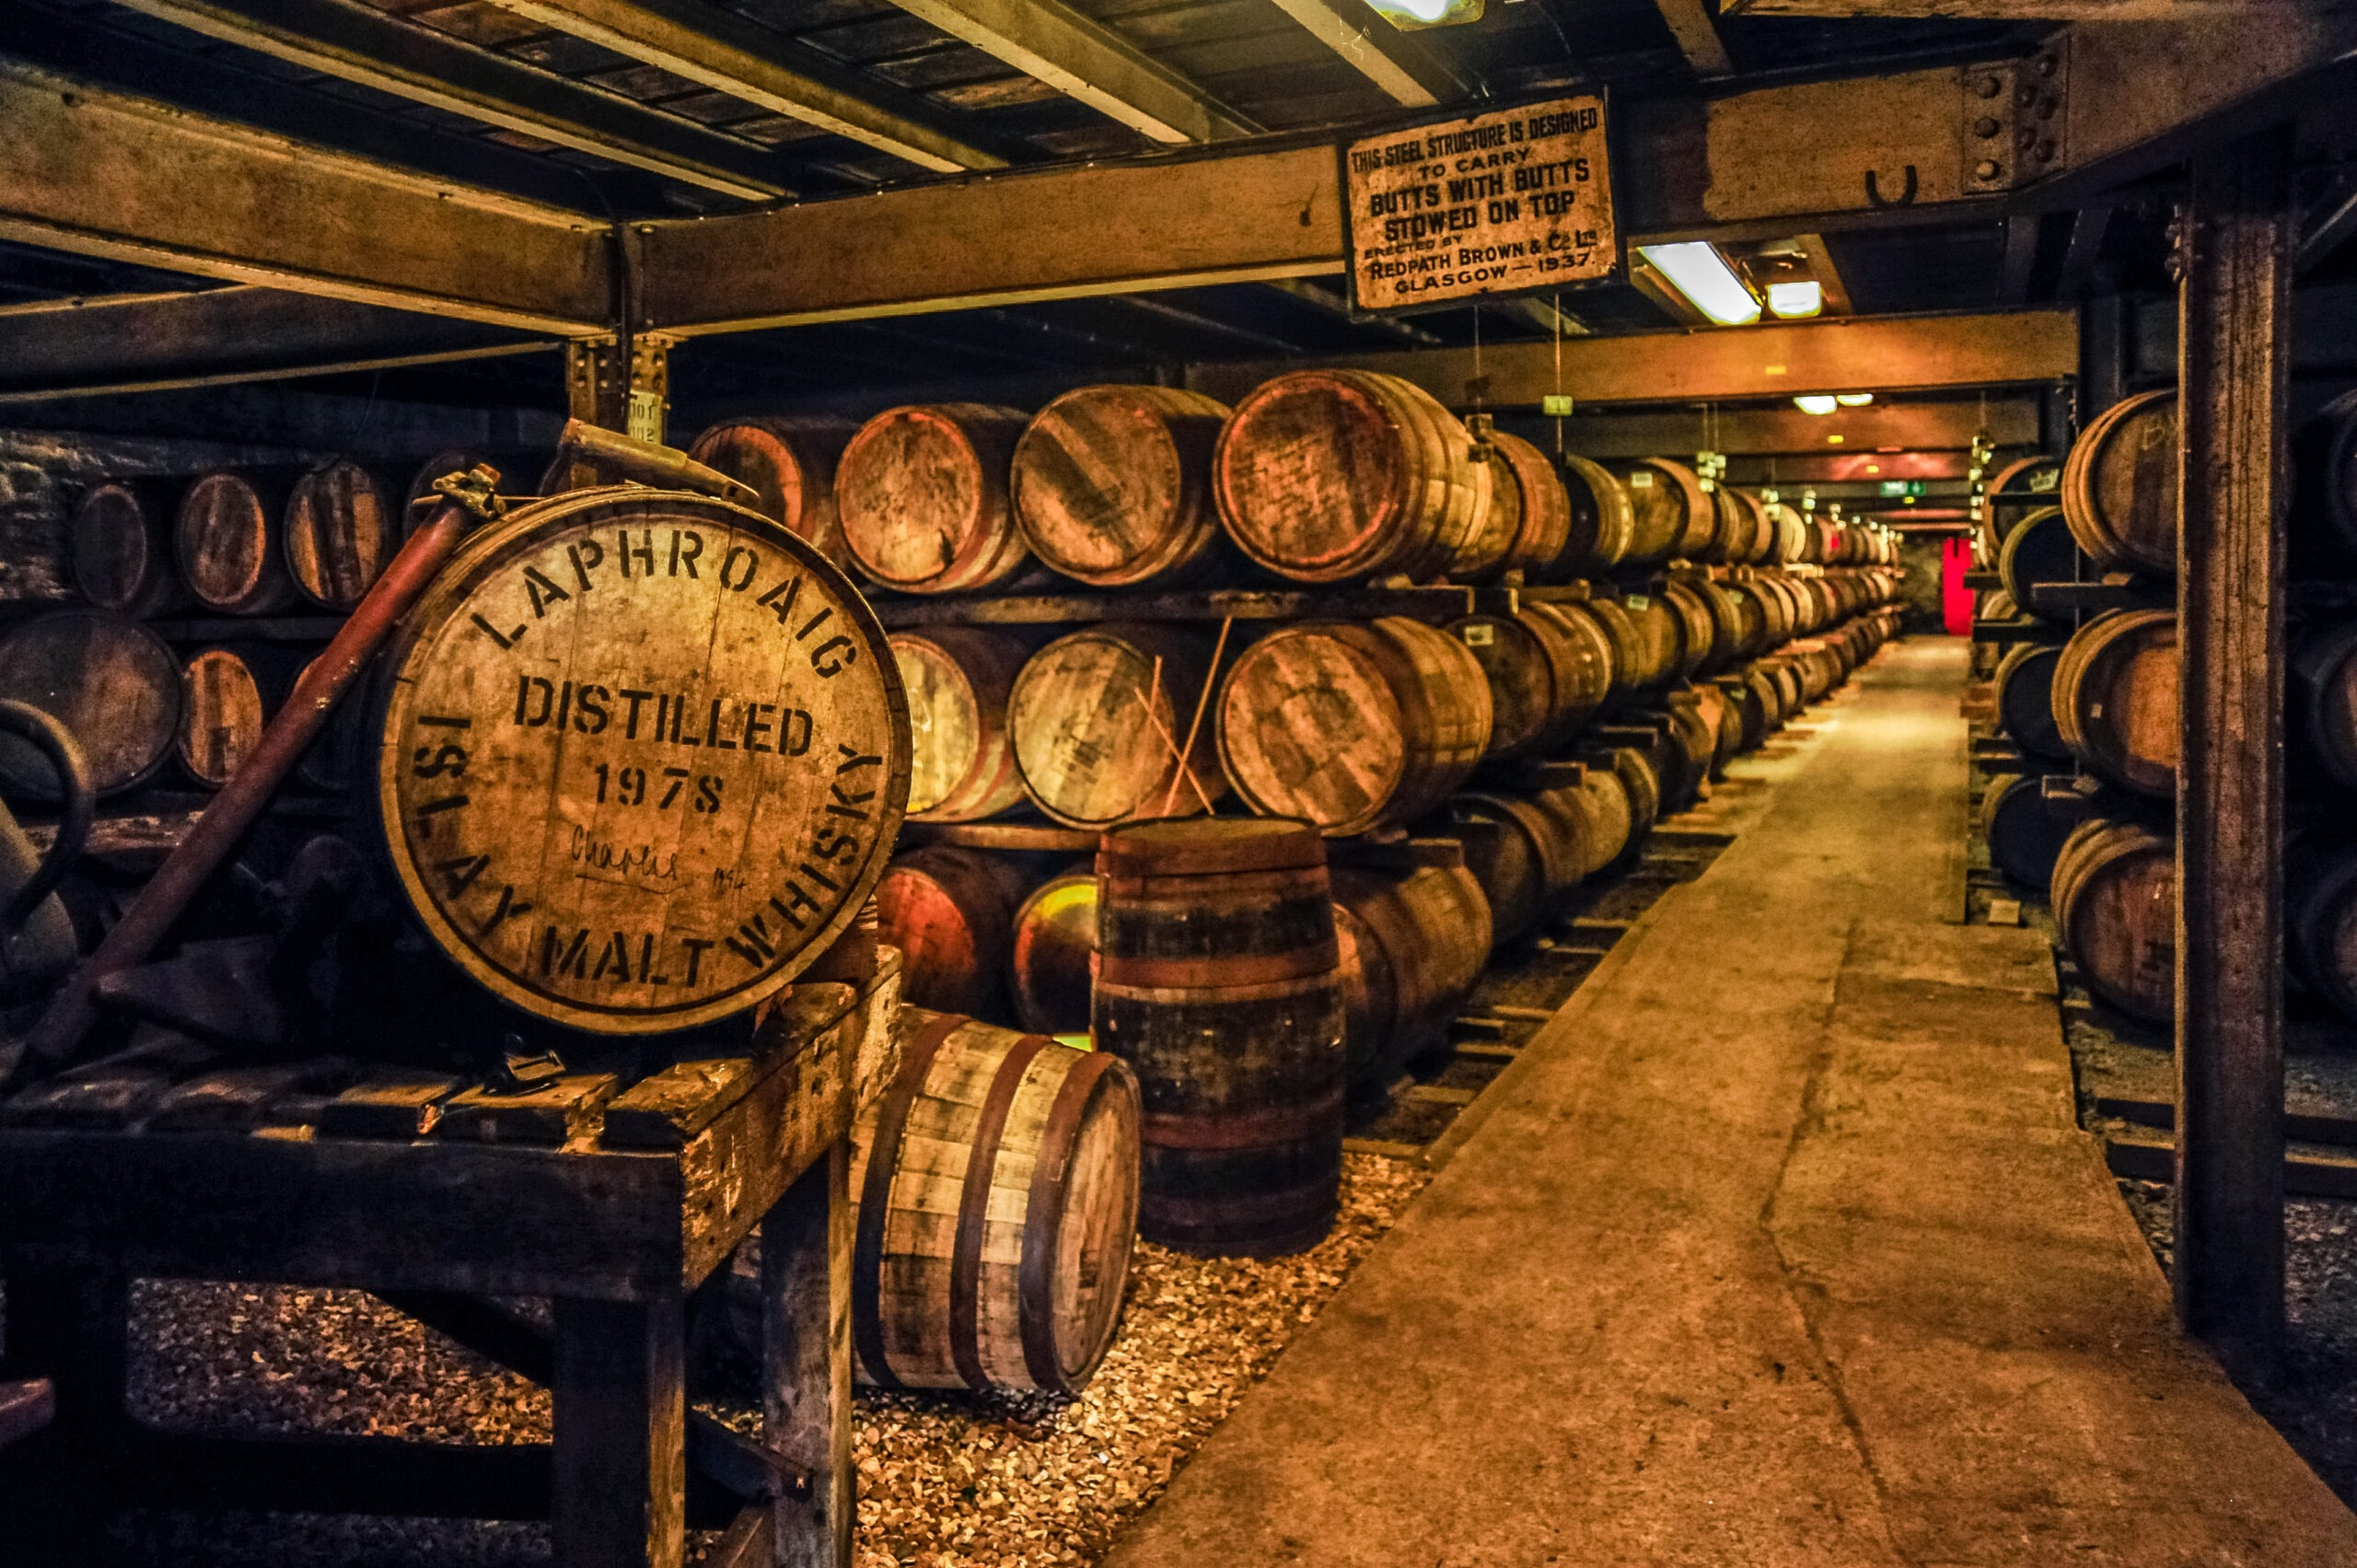 Why are Islay whiskies so special?